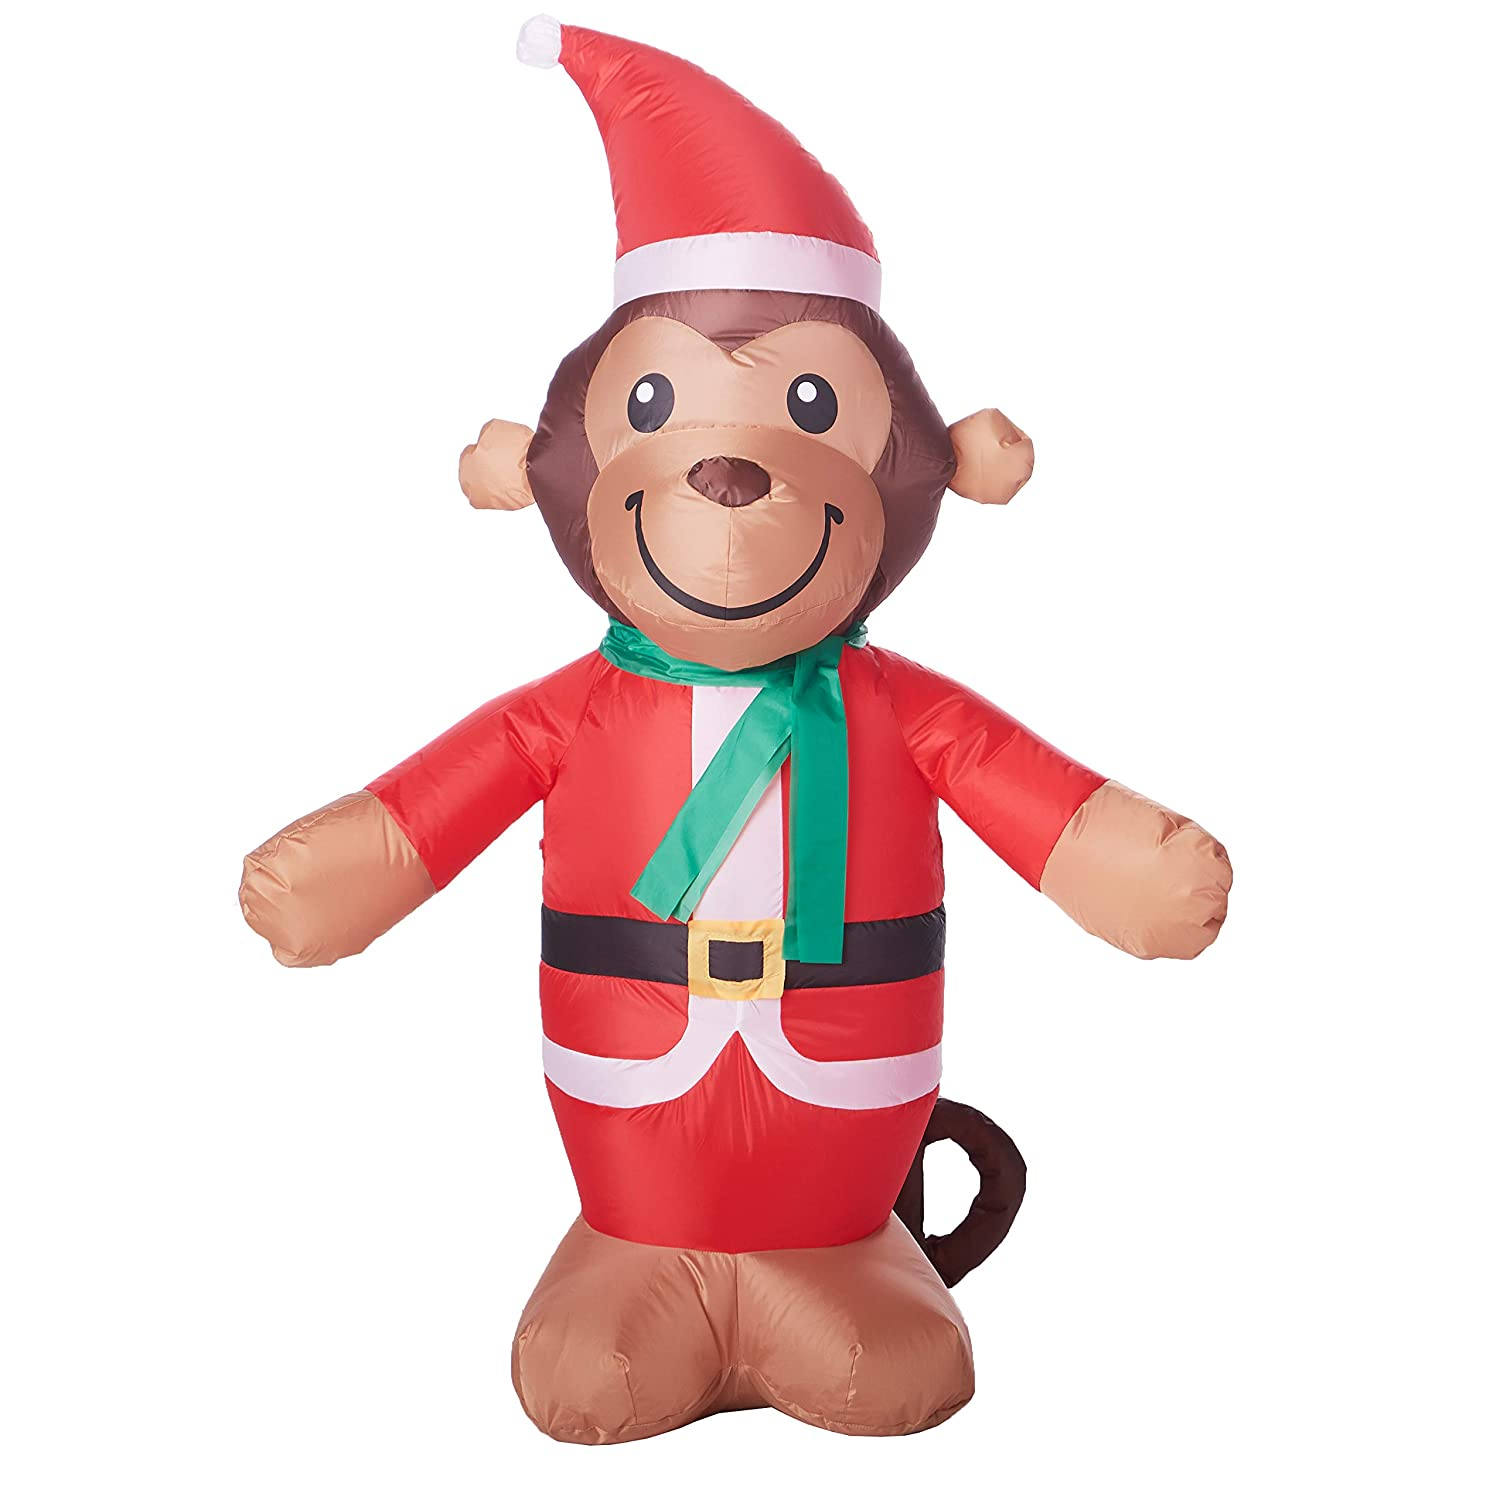 Ideas Monkey with Patch Kit Inflatable and Christmas Light Bulb Stickers Or Repair Patch Set Ropeastar Holiday Outdoor or Indoor Decorations Cute Yard Decoration for Christmas